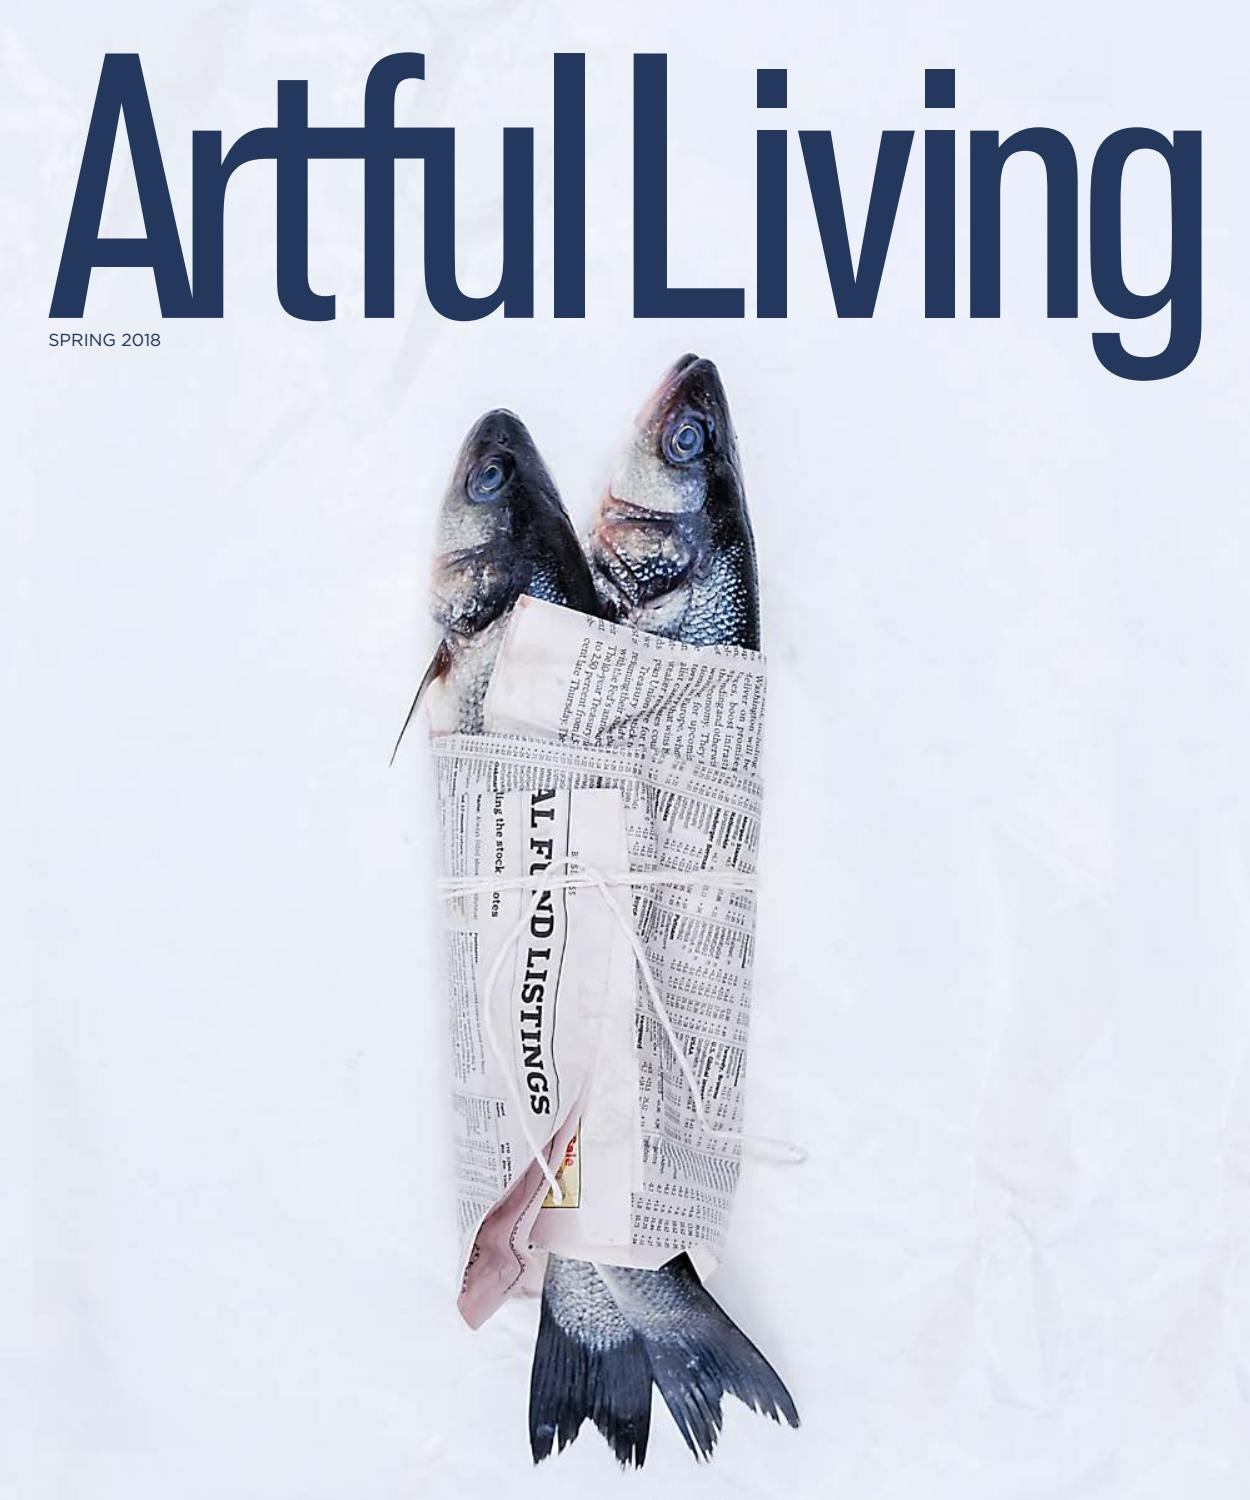 waterford crystal pineapple vase of artful living magazine spring 2018 by artful living magazine issuu in page 1